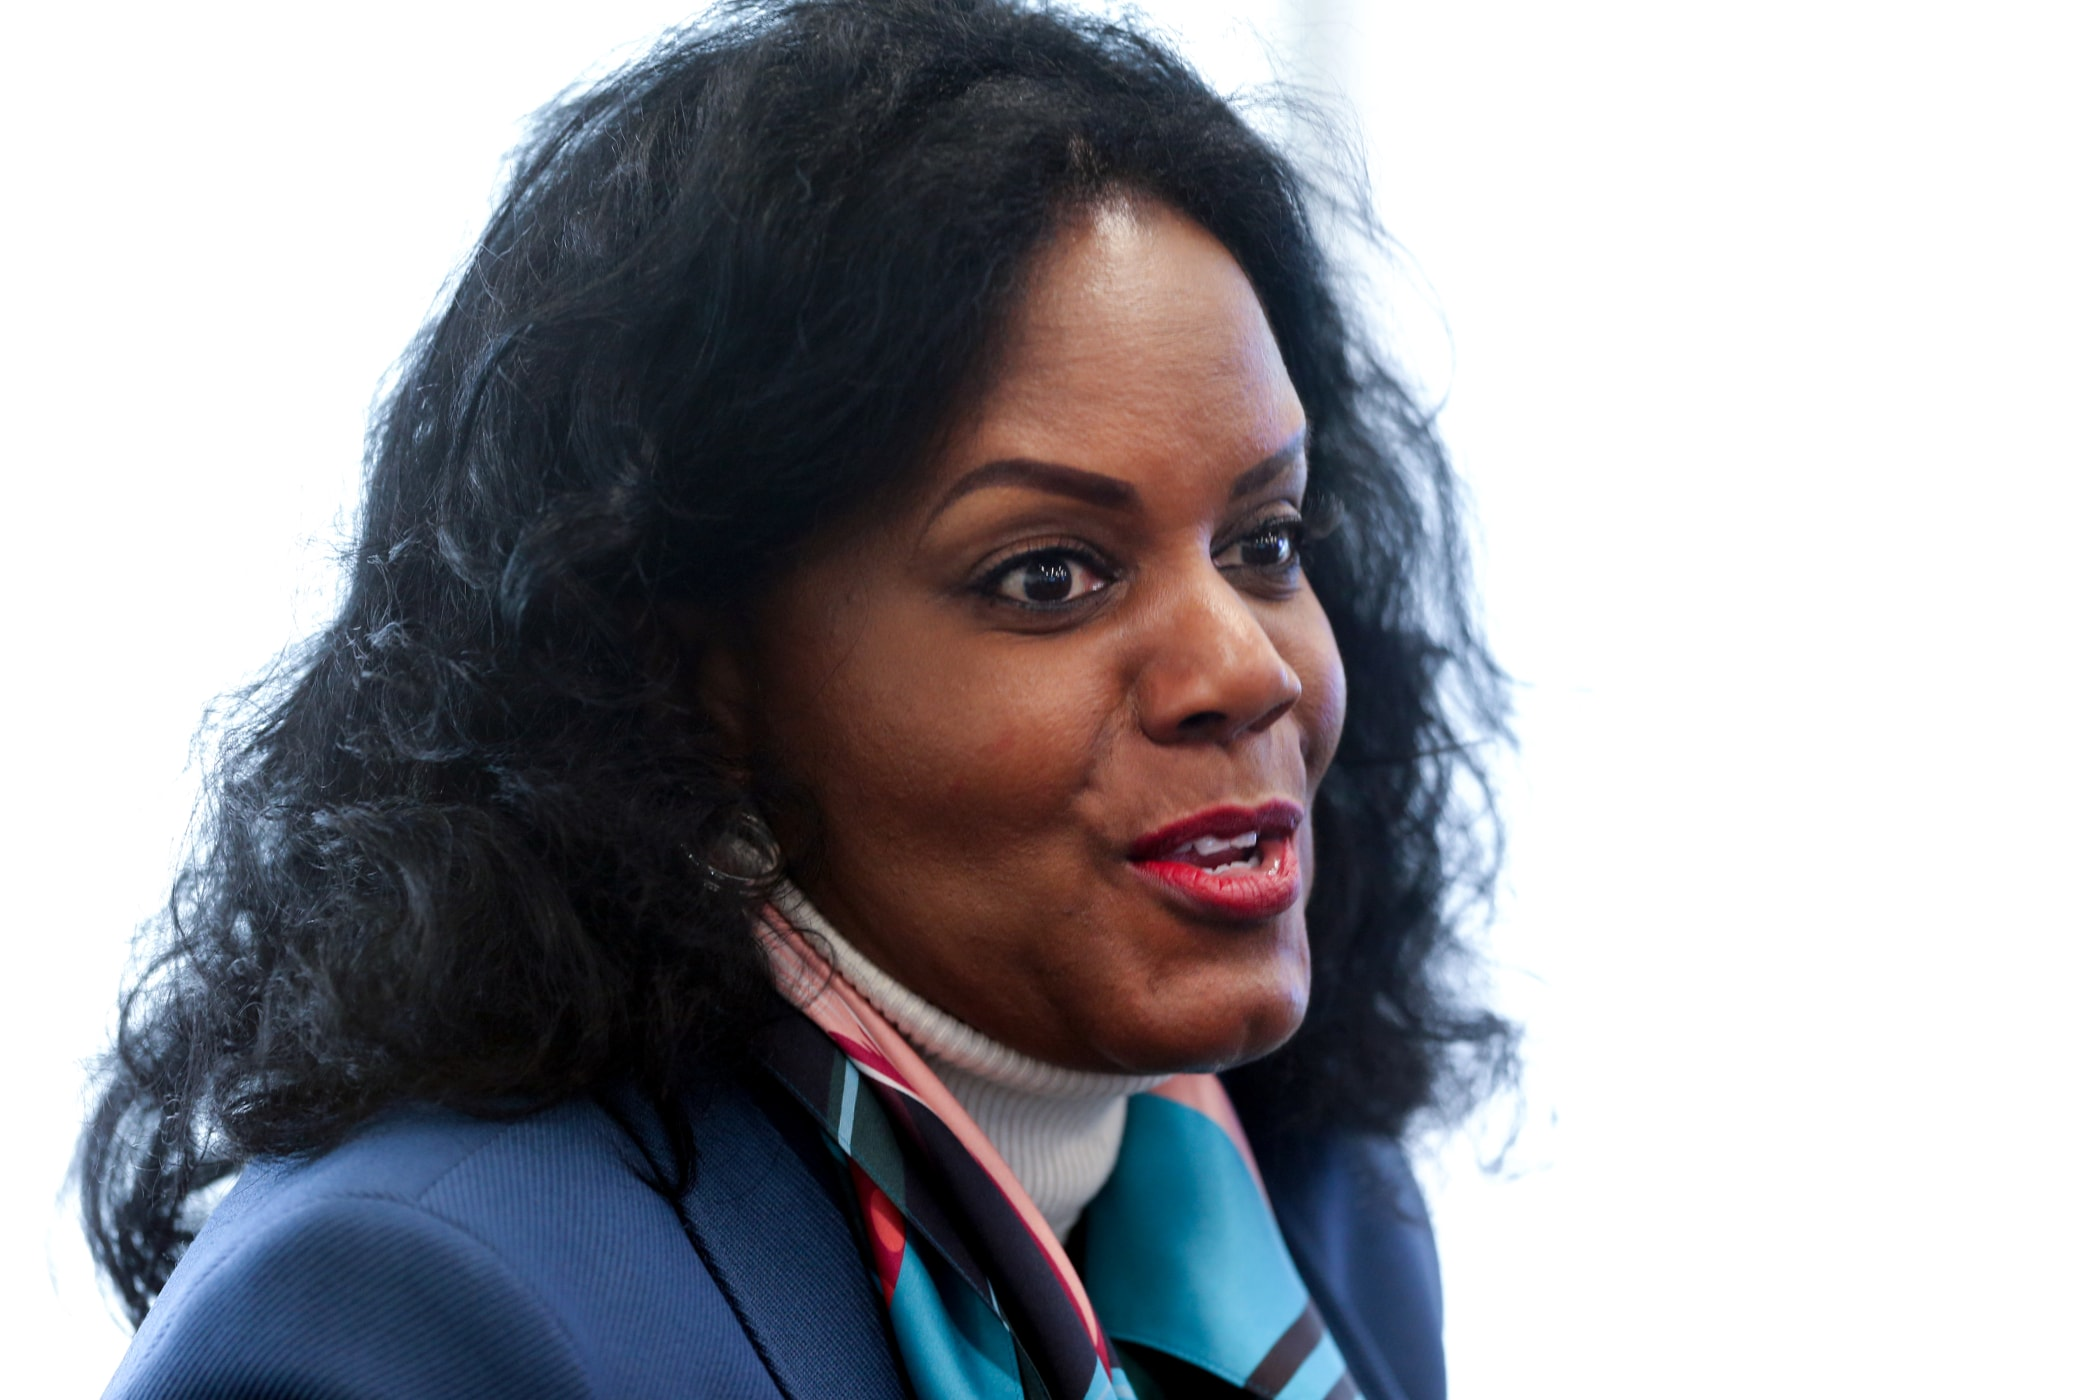 Renee Coleman-Mitchell, commissioner of the Connecticut Department of Public Health, was among the many people attending Dr. Adams lecture. Coleman-Mitchell is an alumna of the school.